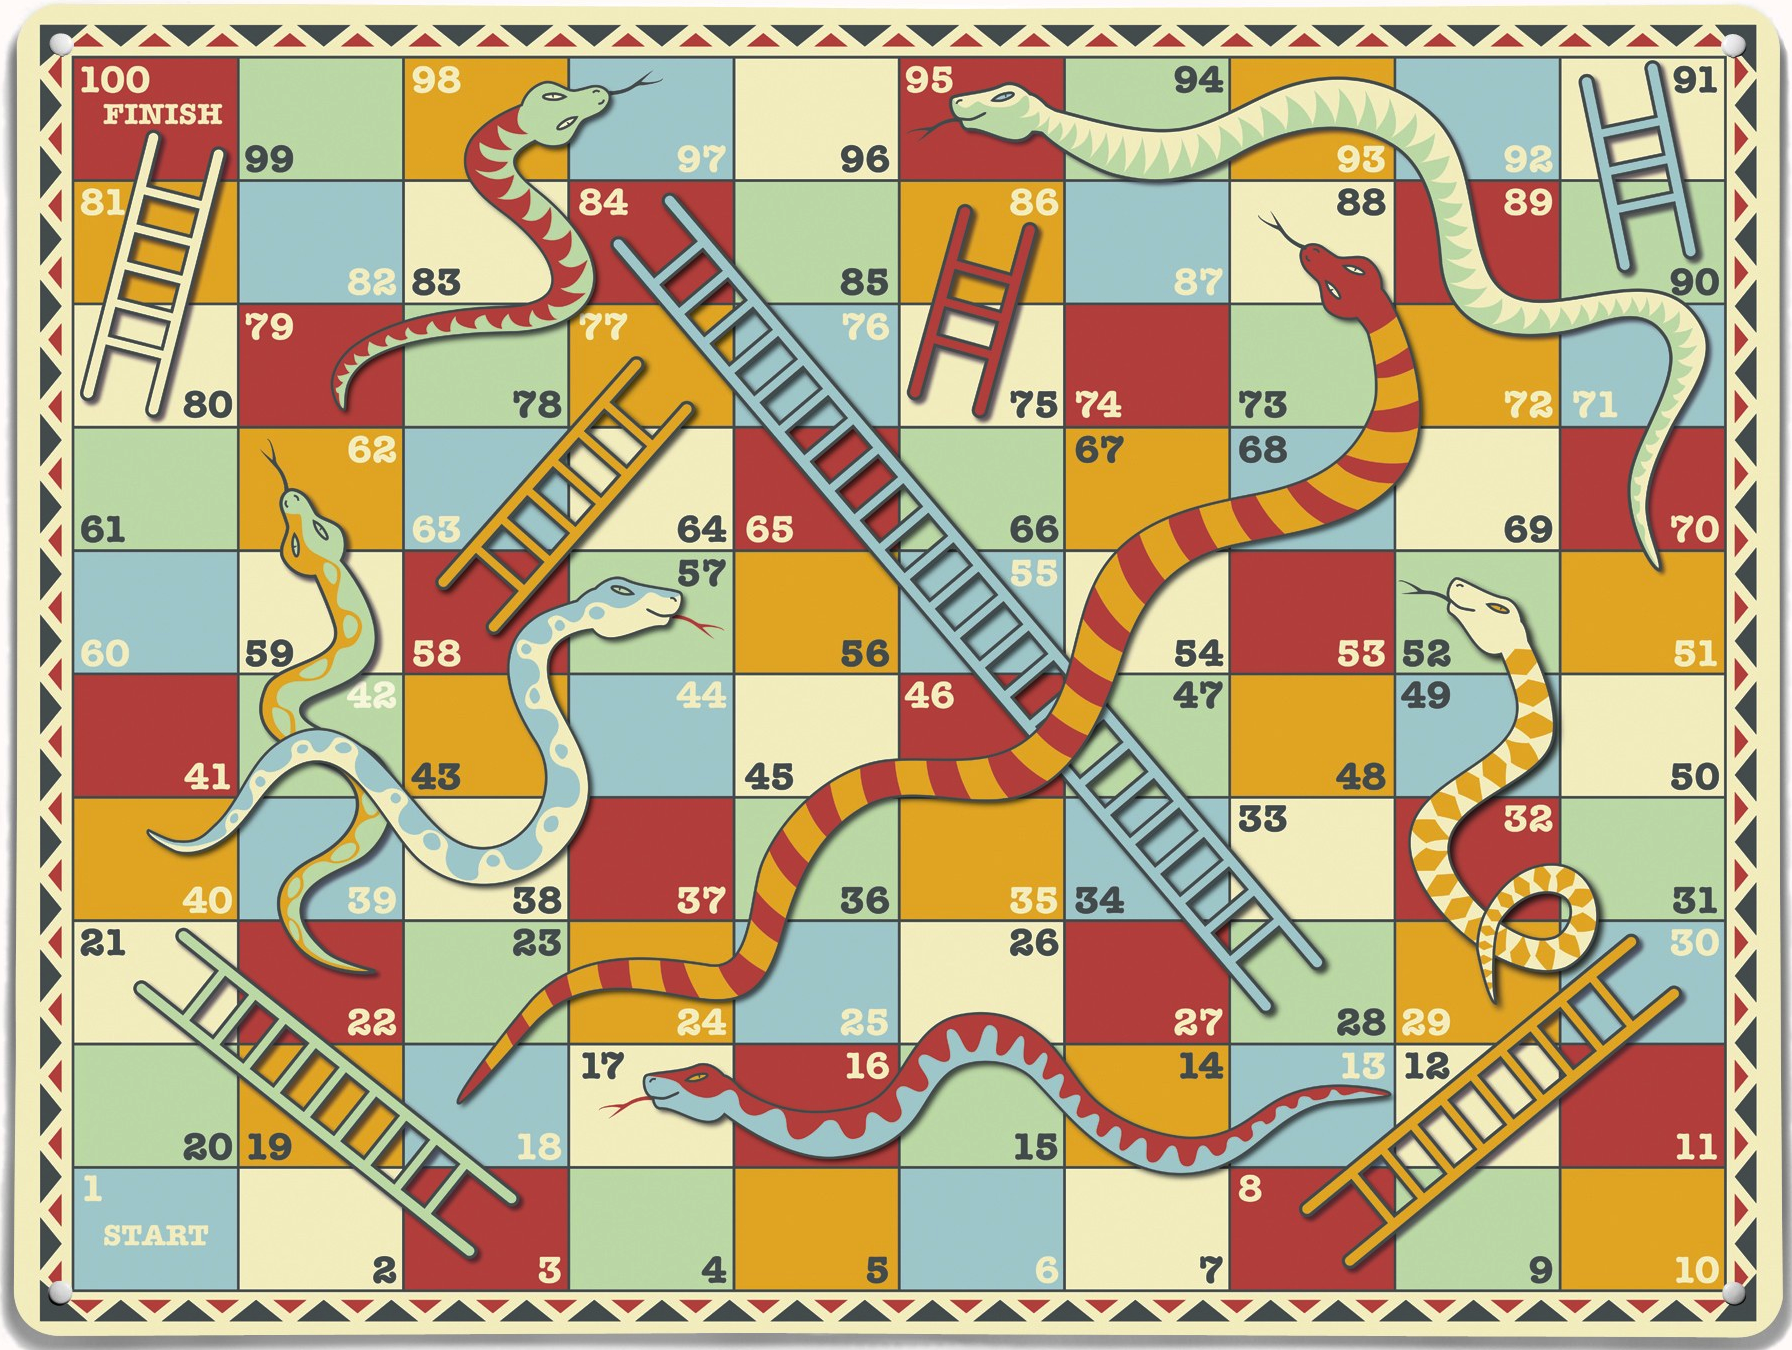 snakes and ladders template pdf - la circonscription de neufch tel langues rallye anglais